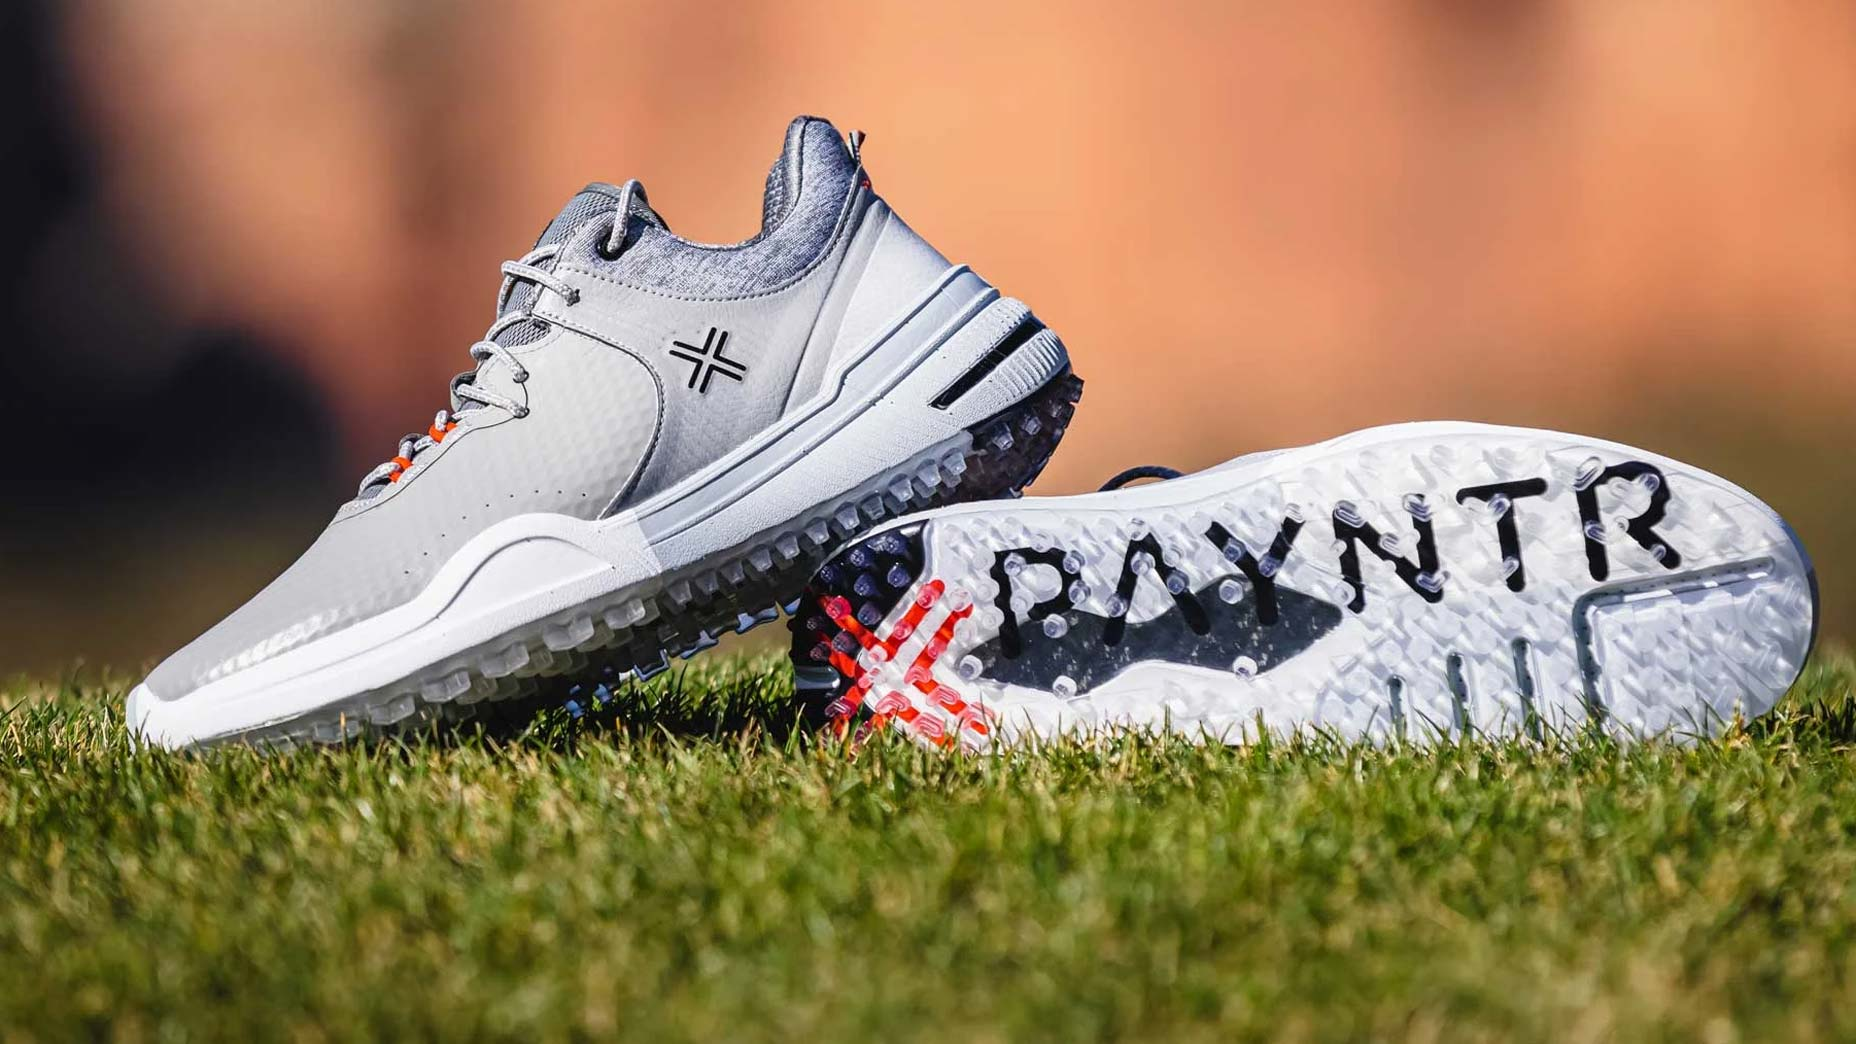 Payntr golf shoes